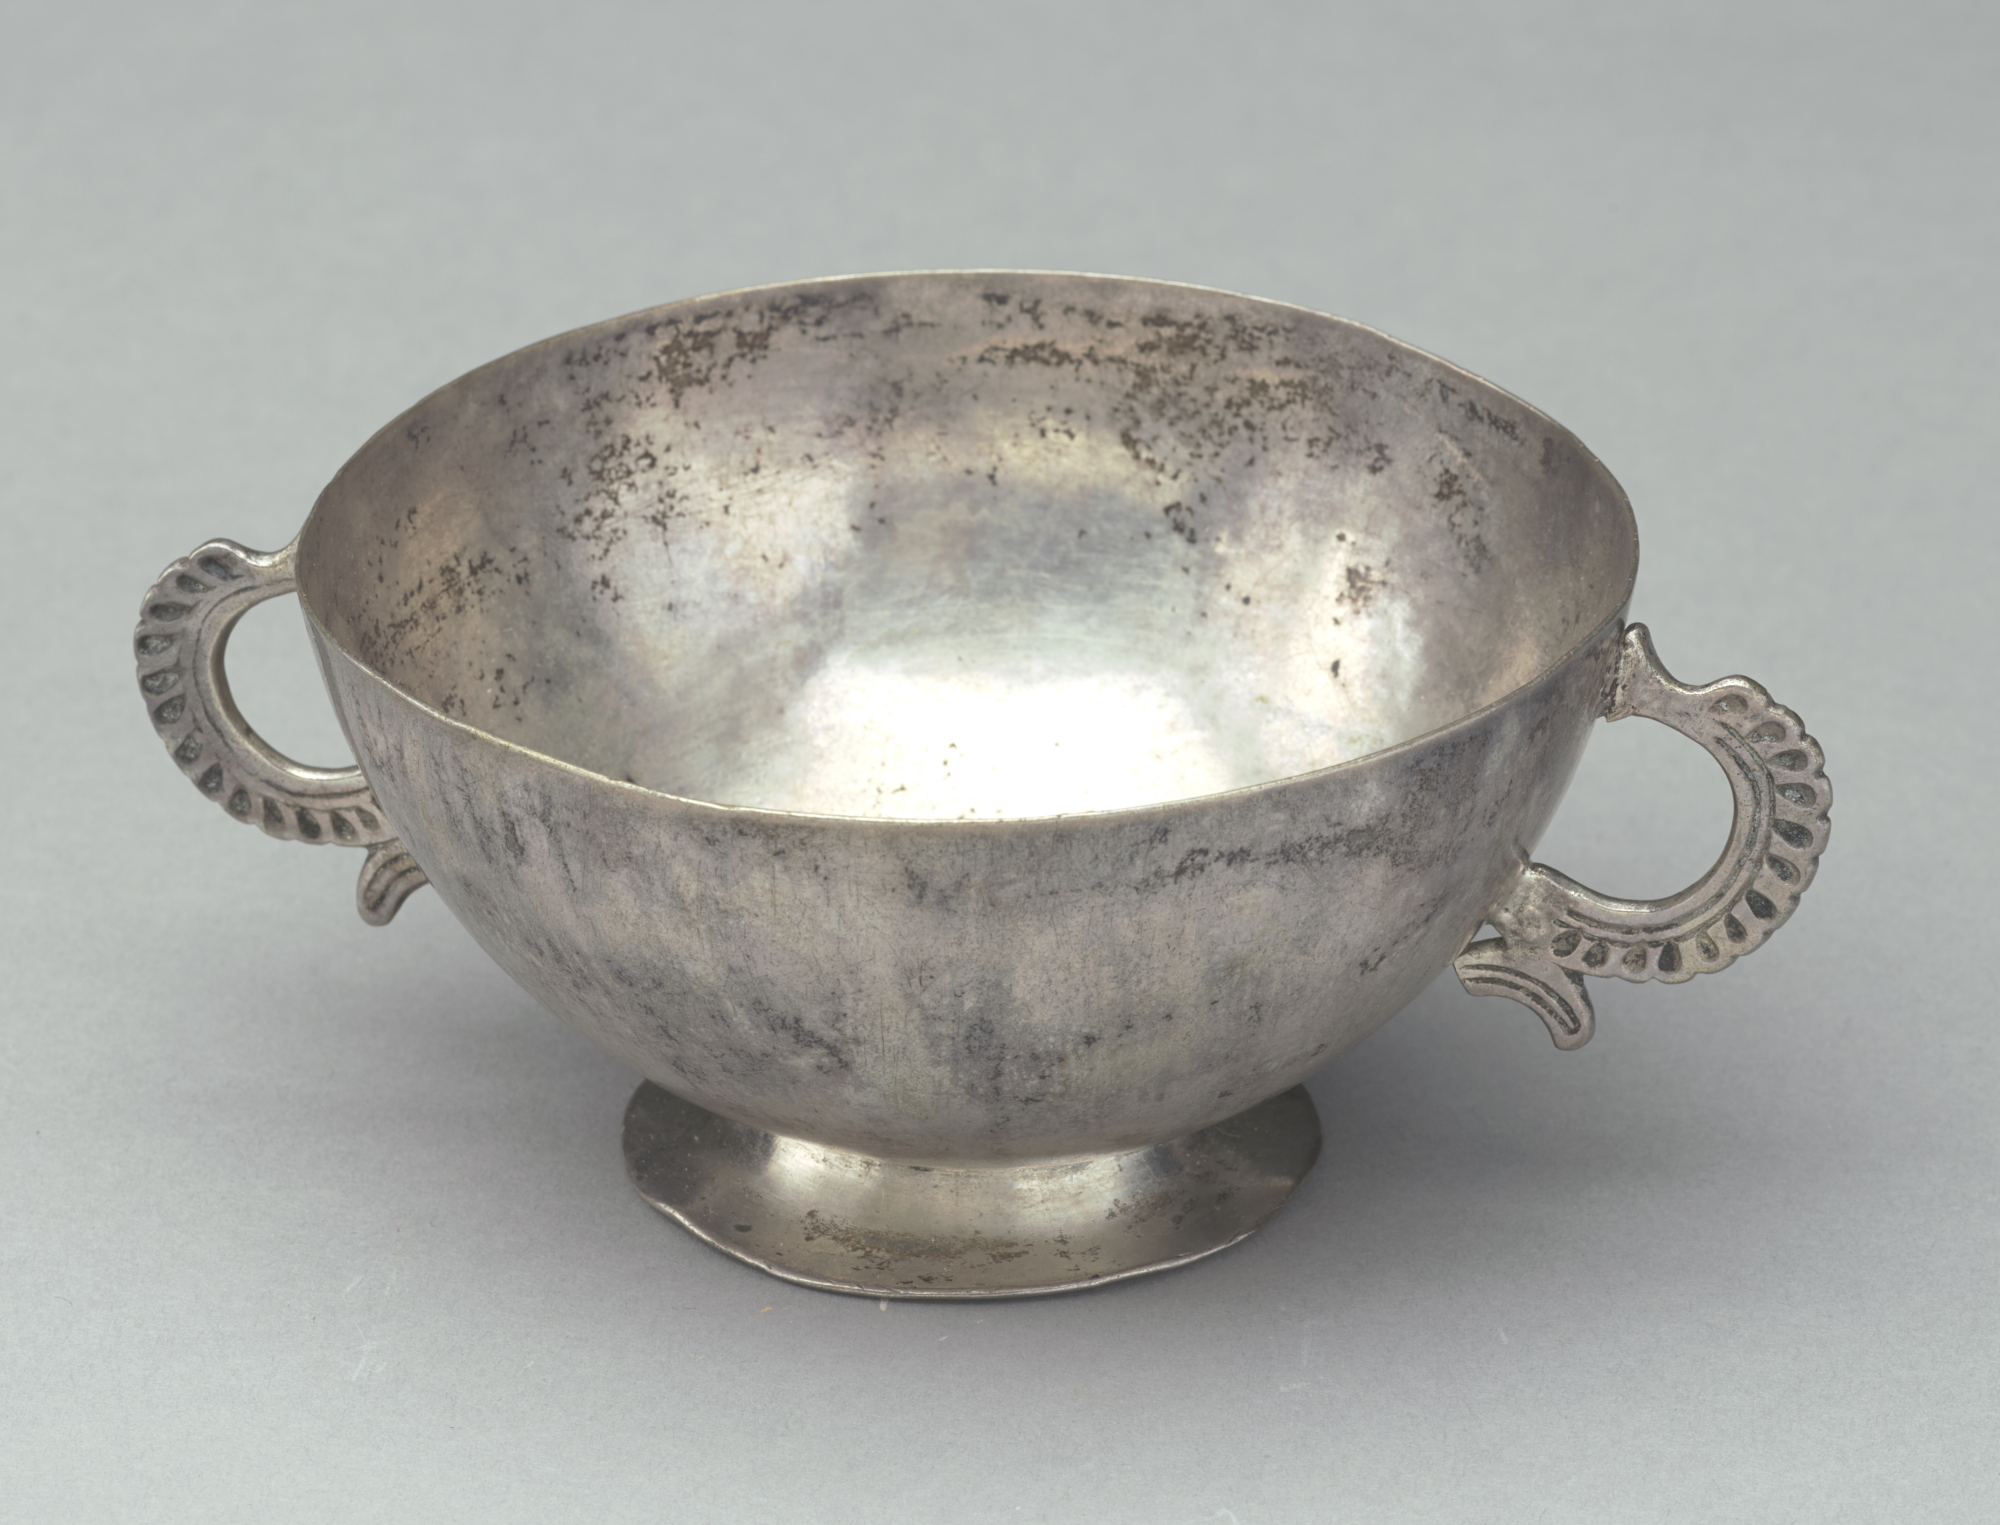 FSC-M-23; Silver cup with double handles